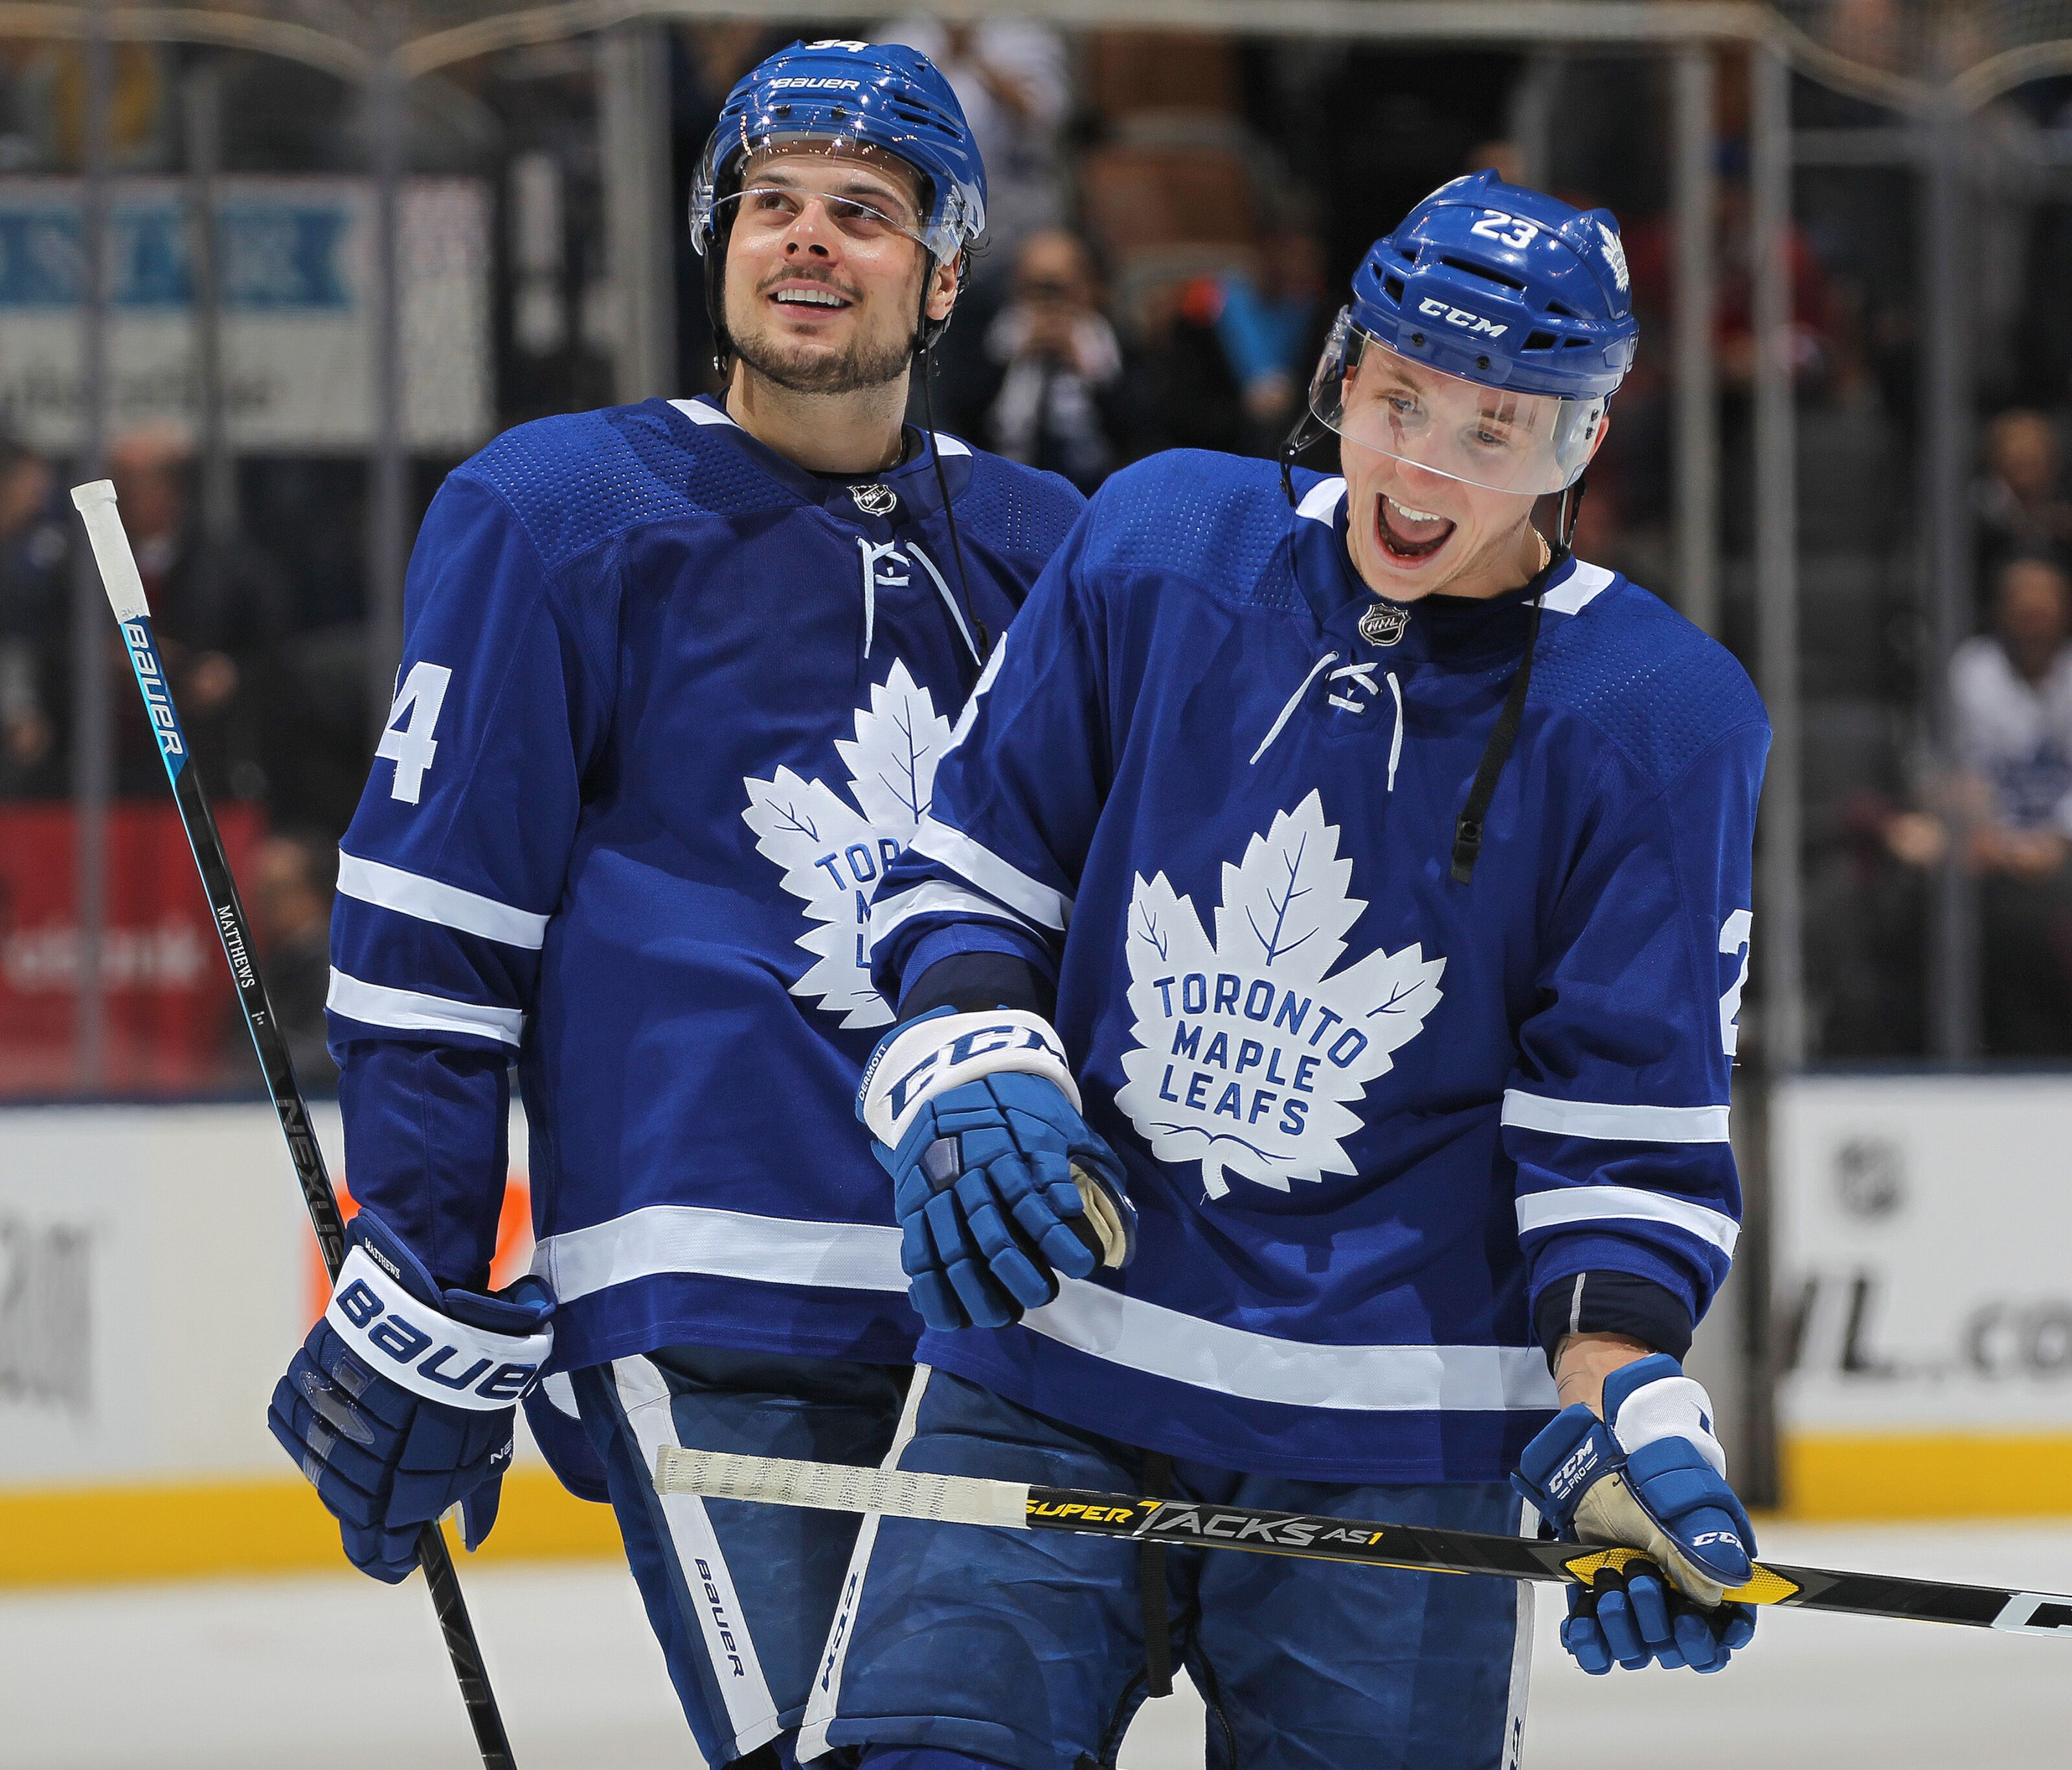 17dde10c4 Toronto Maple Leafs show heart in the face of adversity